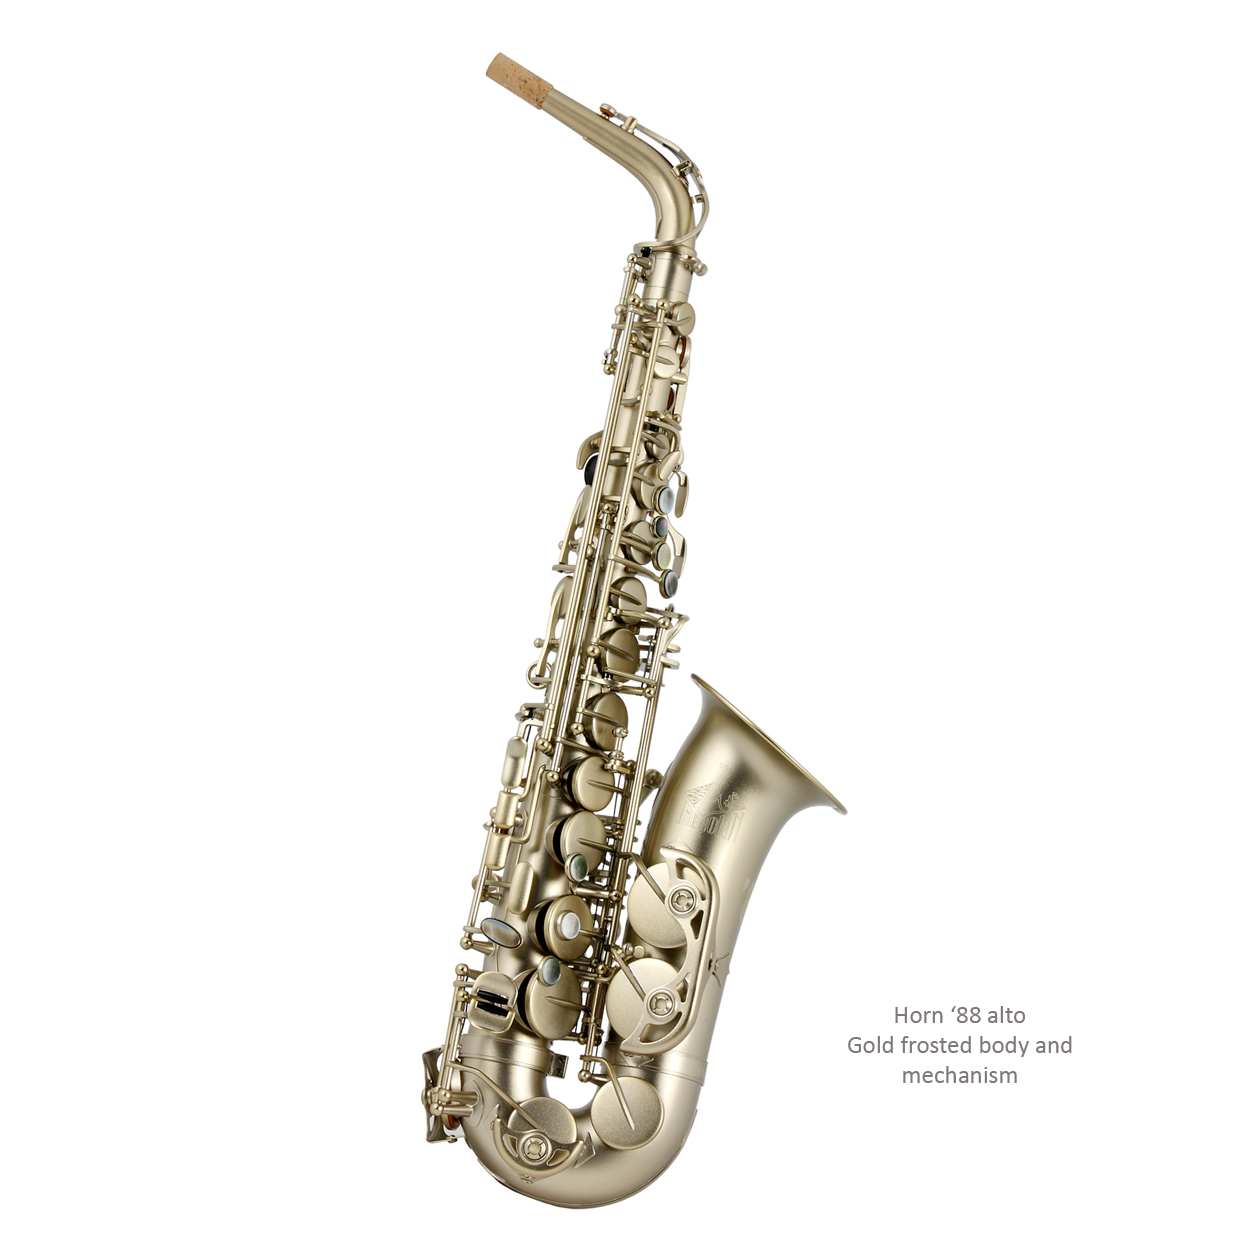 Trevor J. James Alt Saxophon The Horn '88 Frosted gold